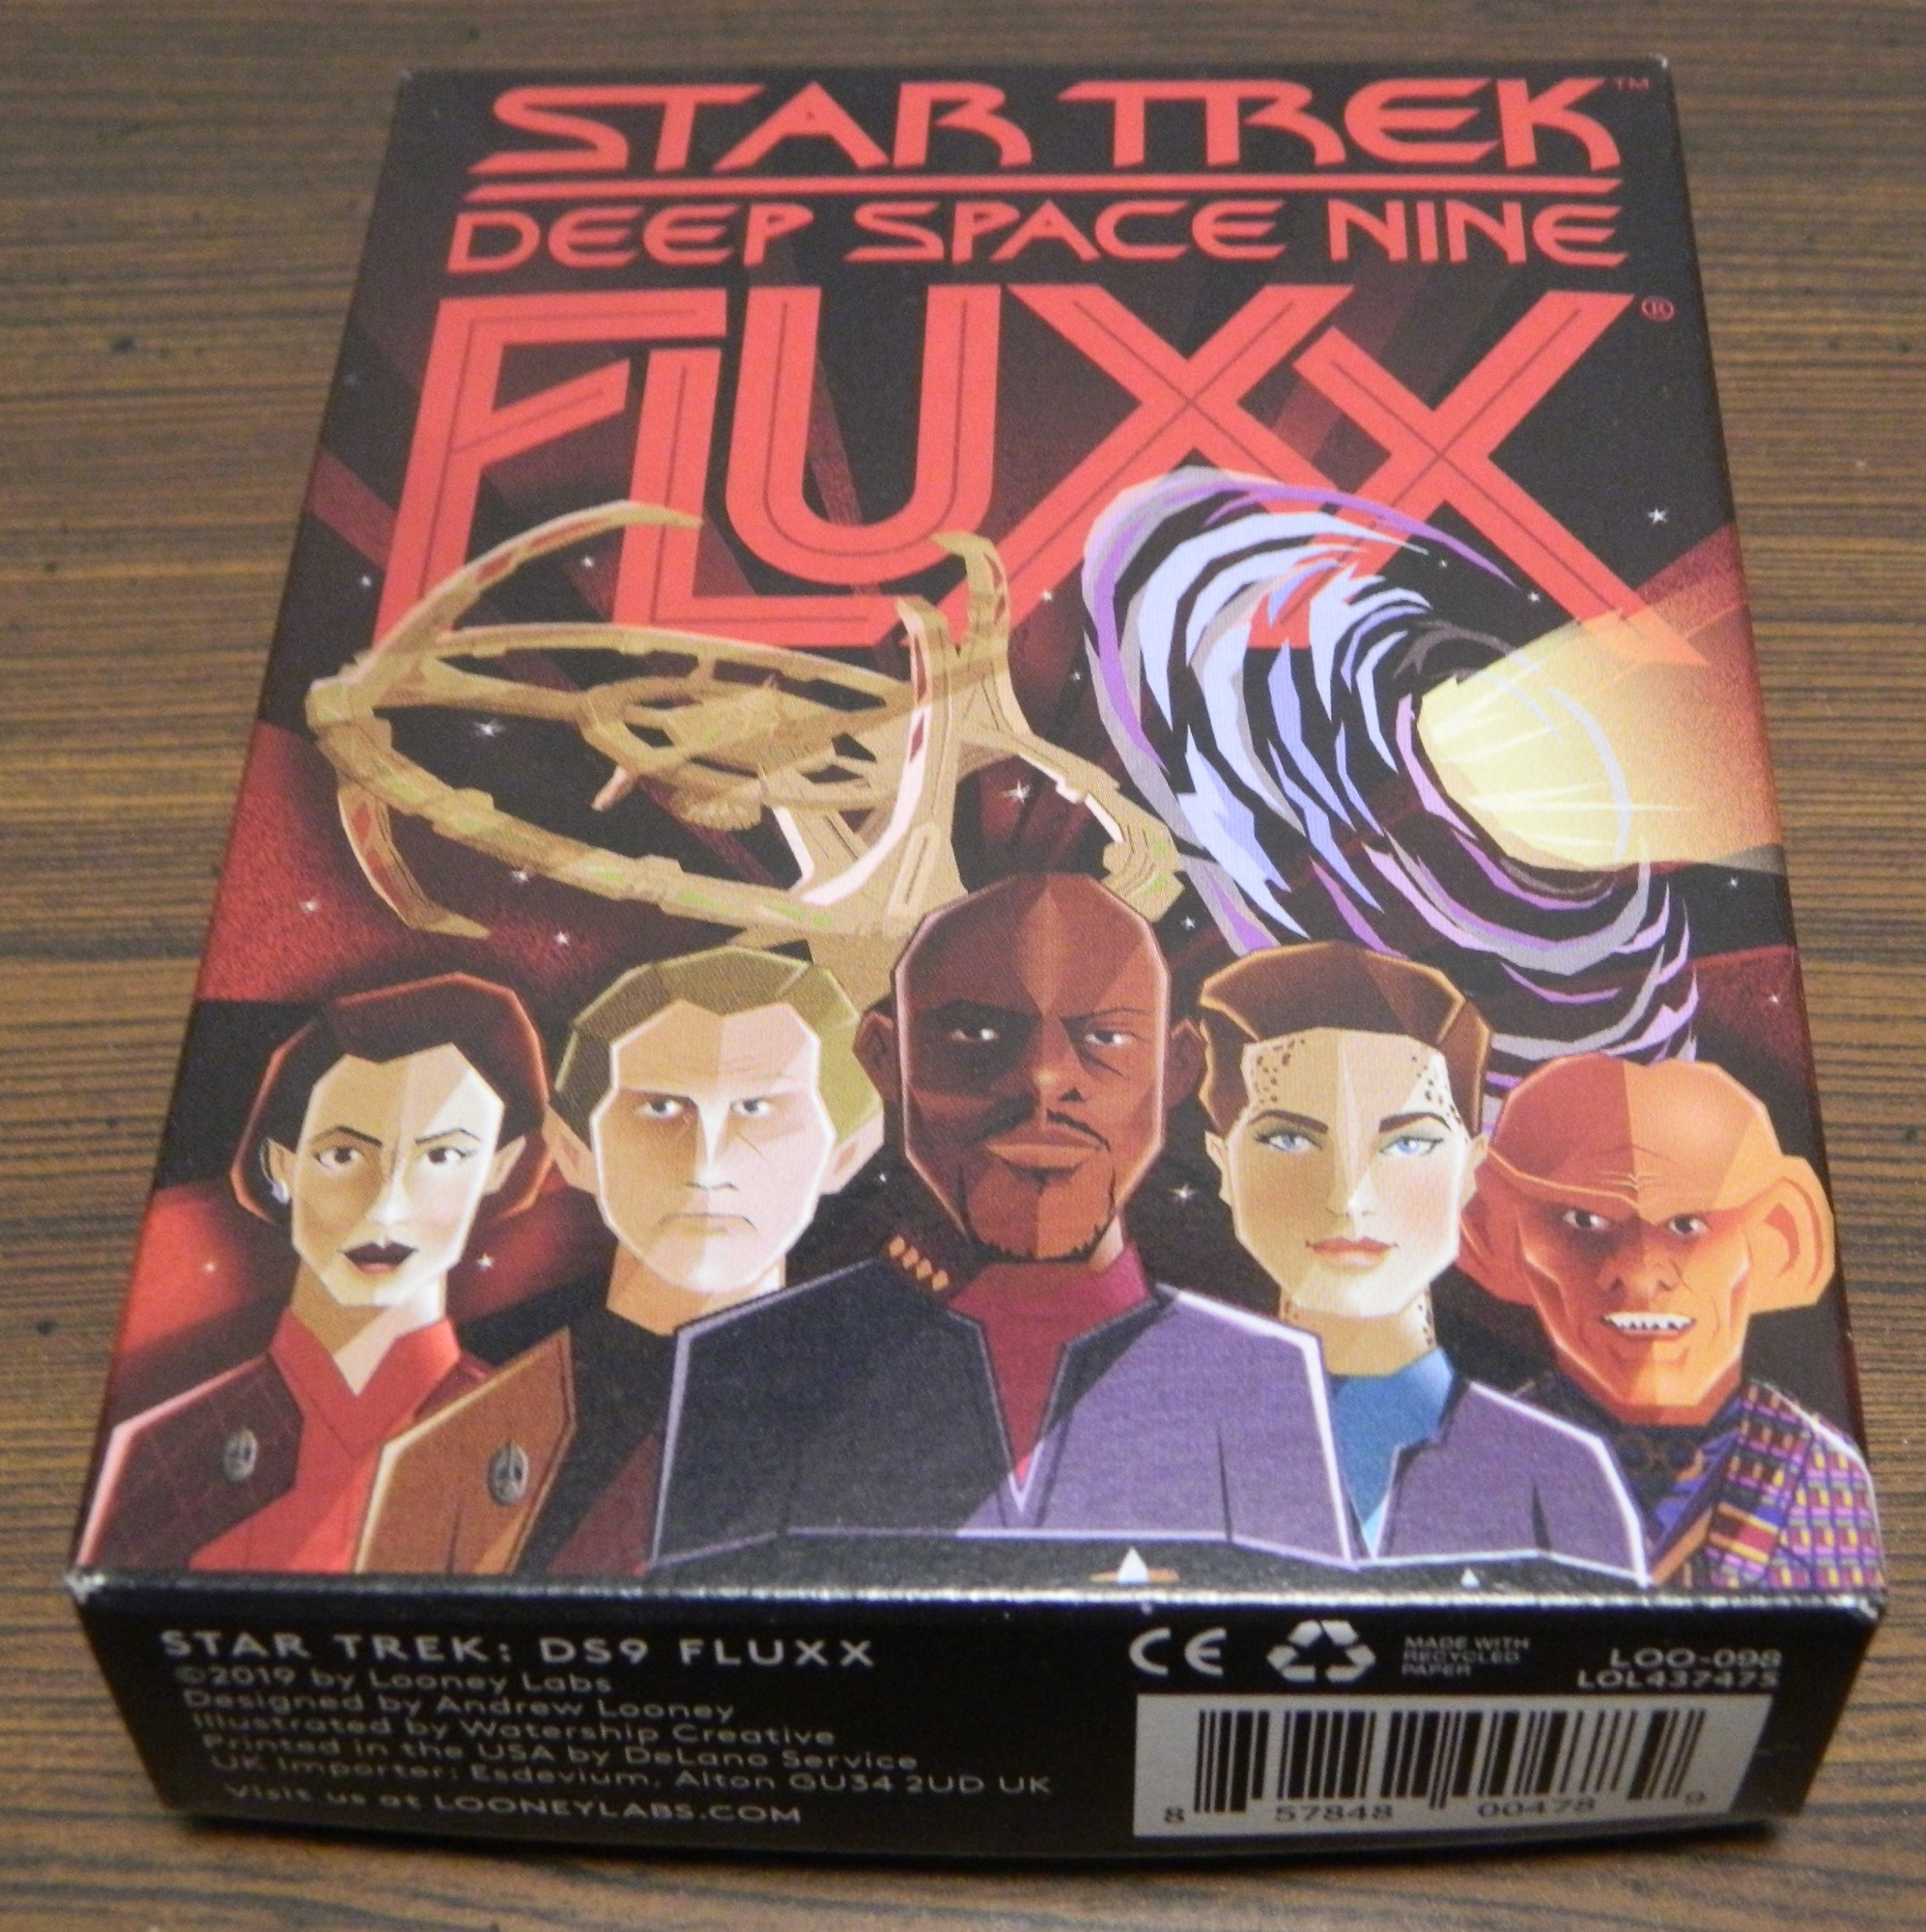 Box for Star Trek Deep Space Nine Fluxx